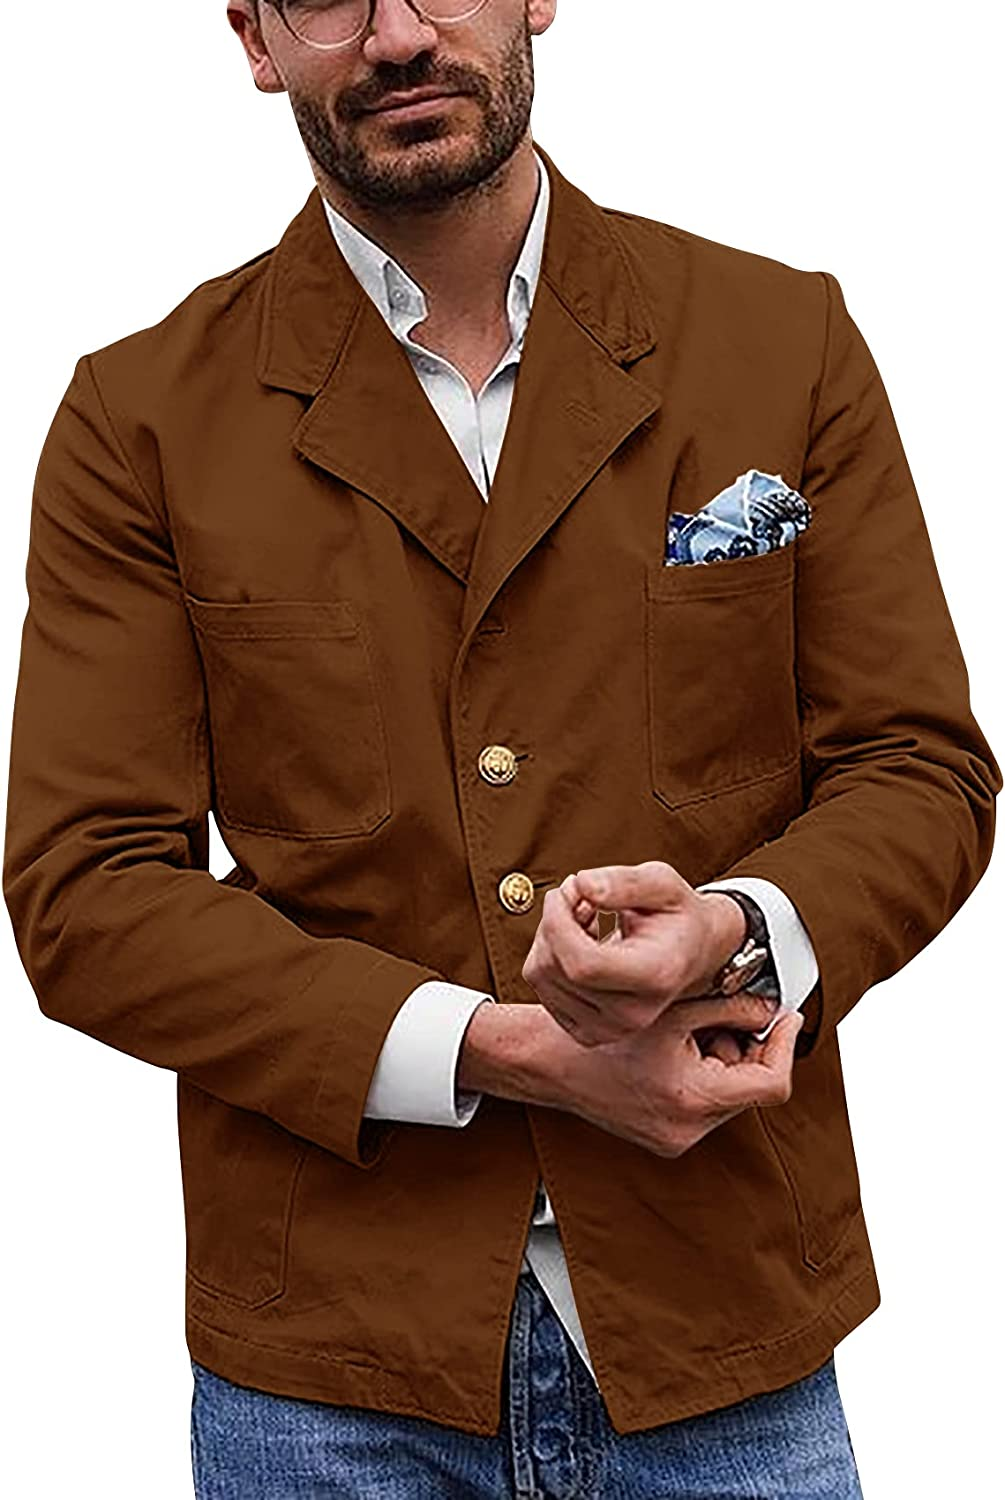 Gafeng Mens Cotton Lightweight Jacket Casual Utility Single Breasted Multi-pocketed Suit Jacket